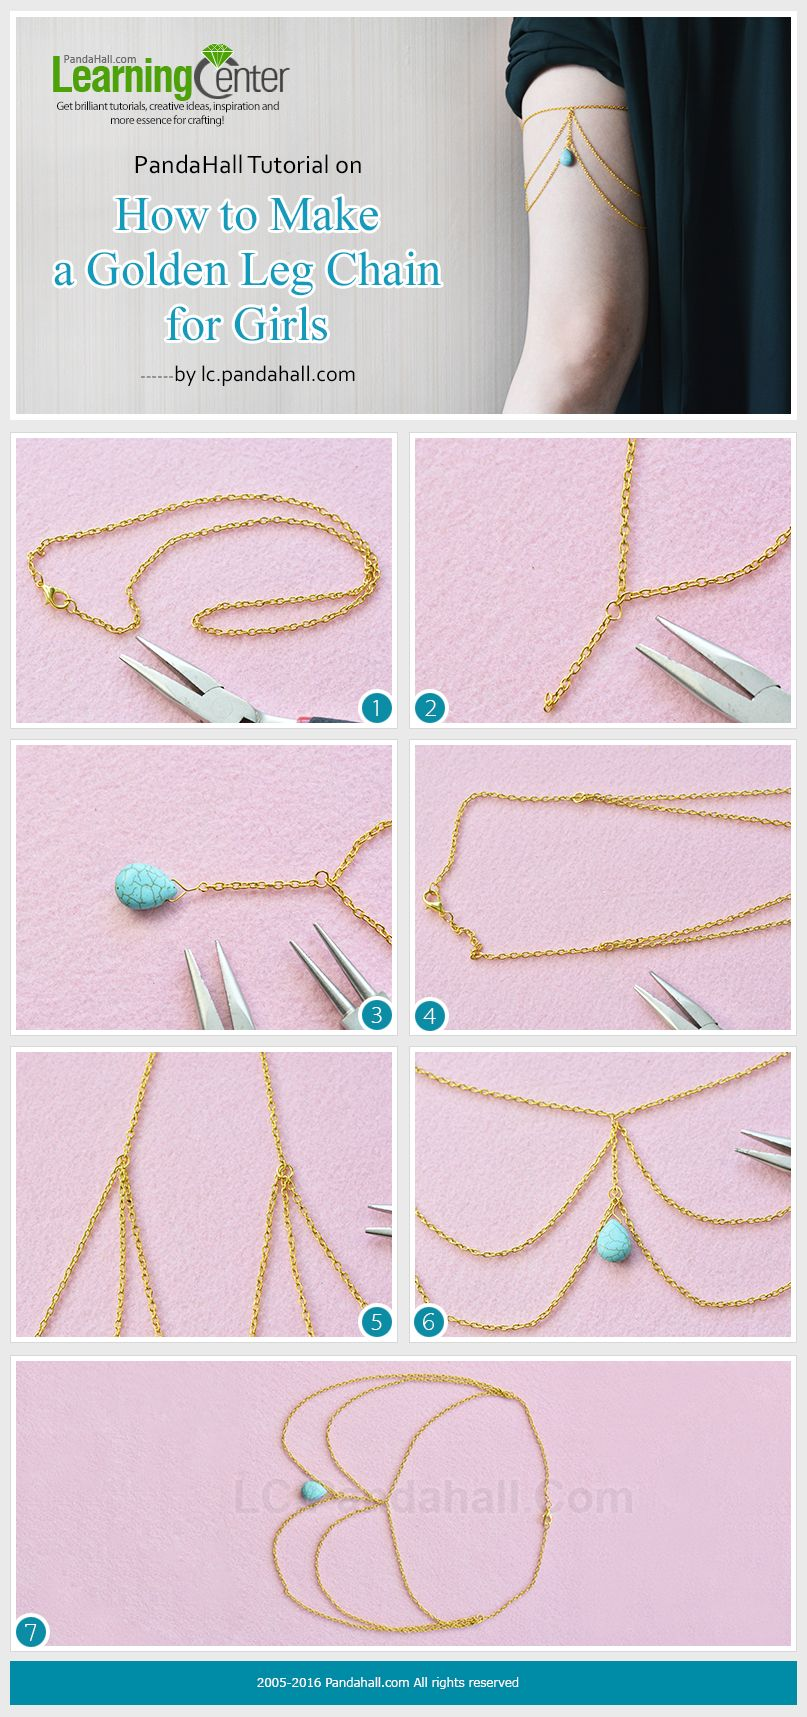 Pandahall tutorial on how to make a golden leg chain for girls from